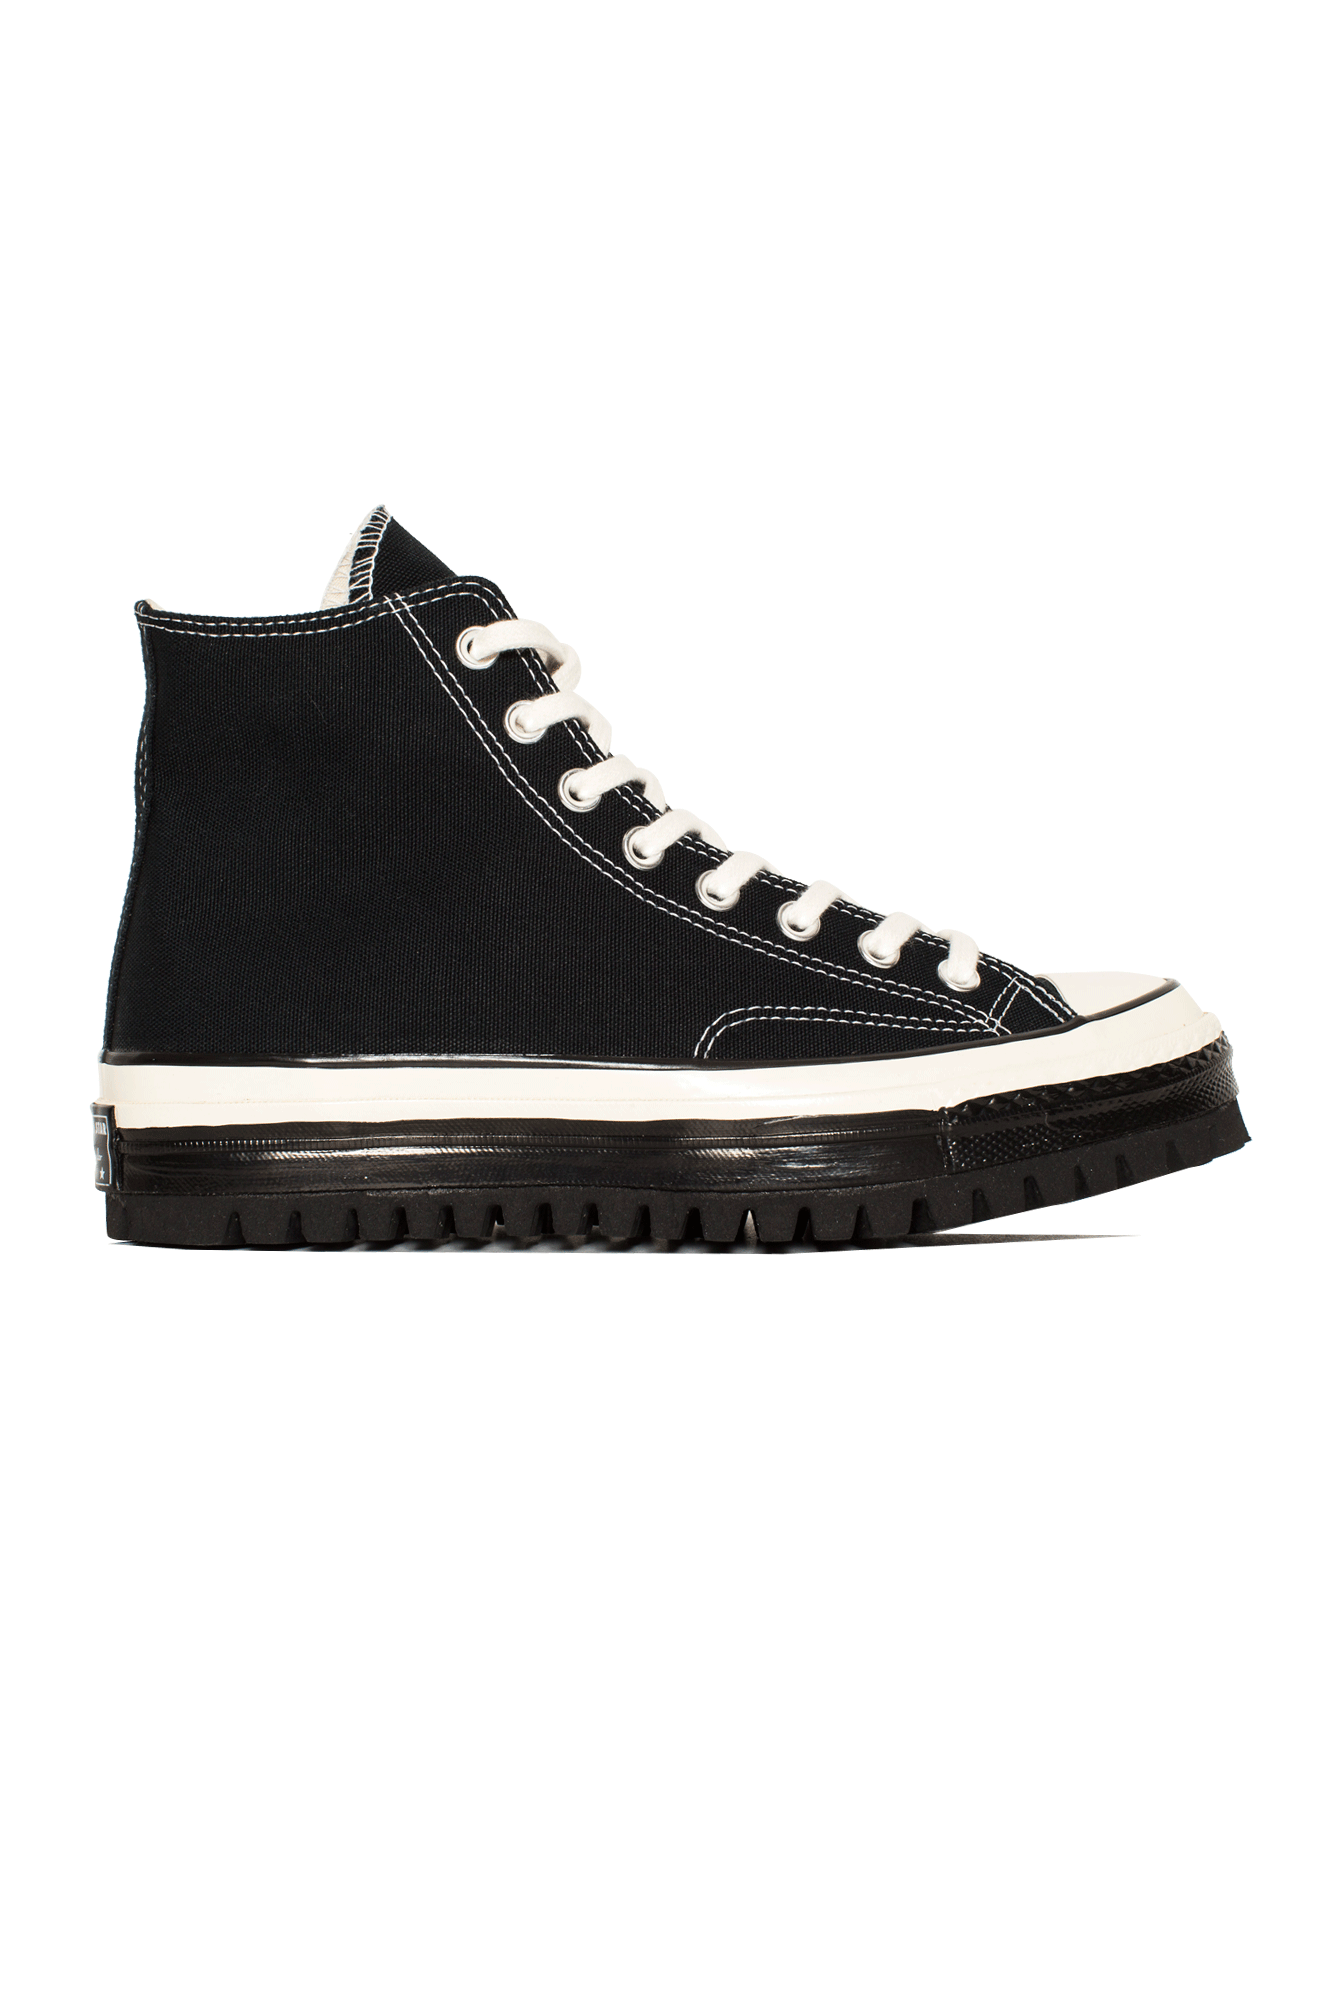 Chuck 70 Canvas Trek LDT HI Black